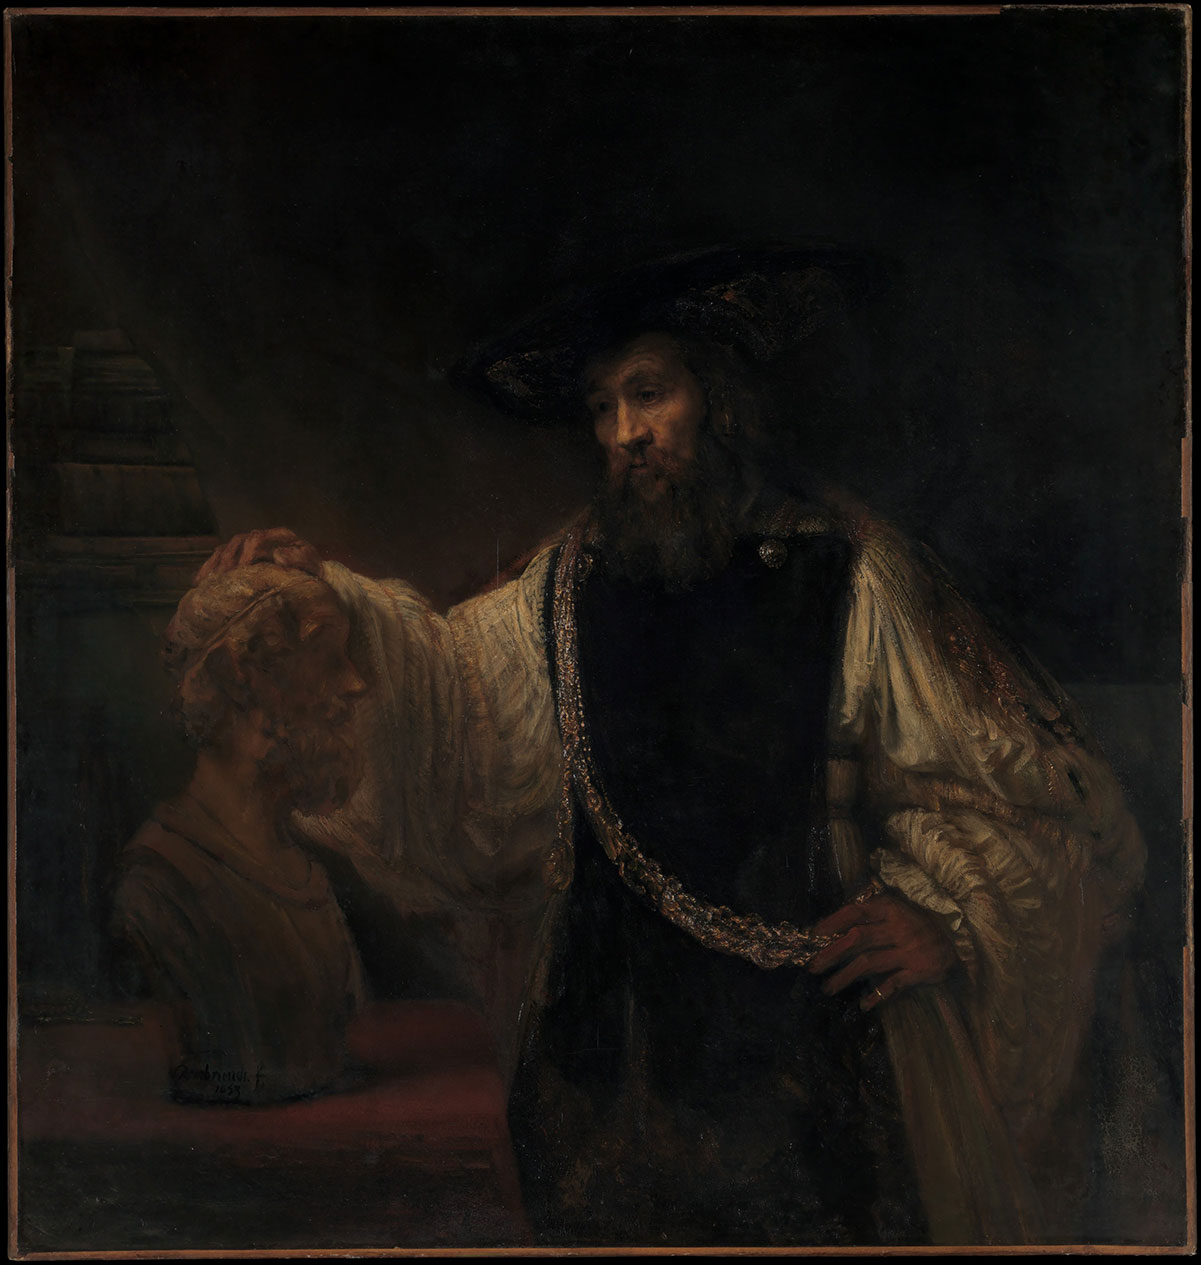 Aristotle with a Bust of Homer - van Rijn